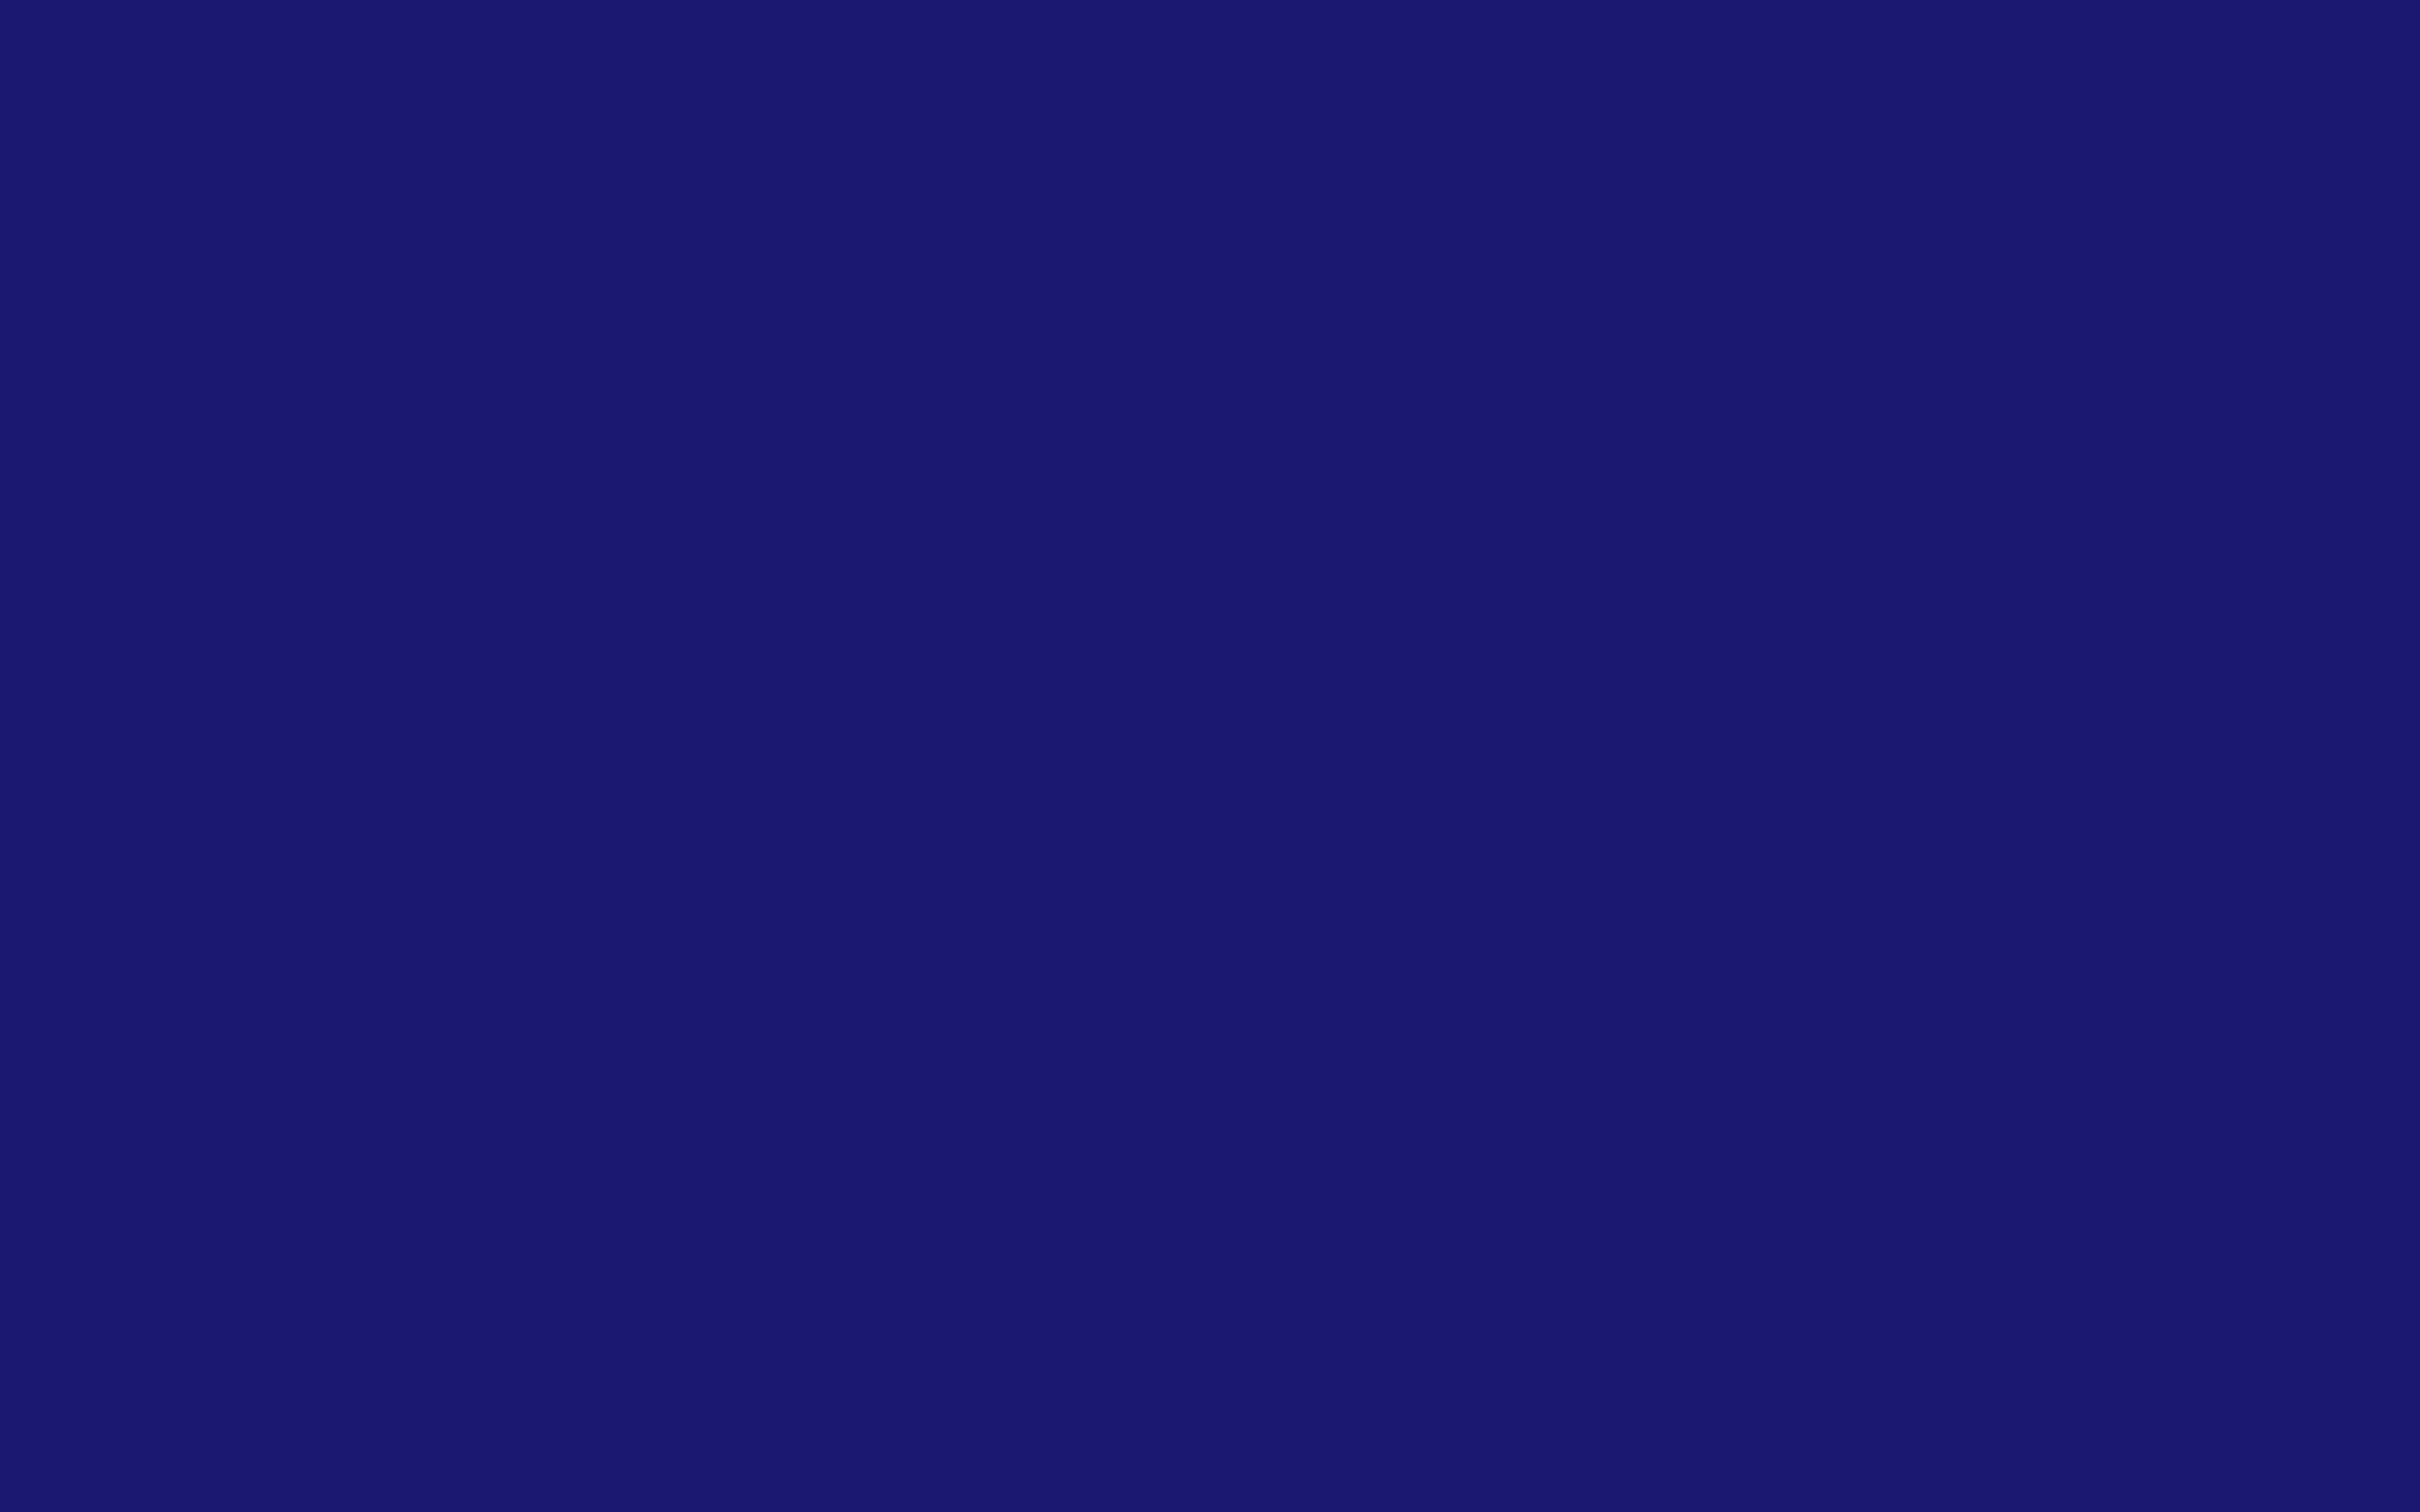 2560x1600 Midnight Blue Solid Color Background